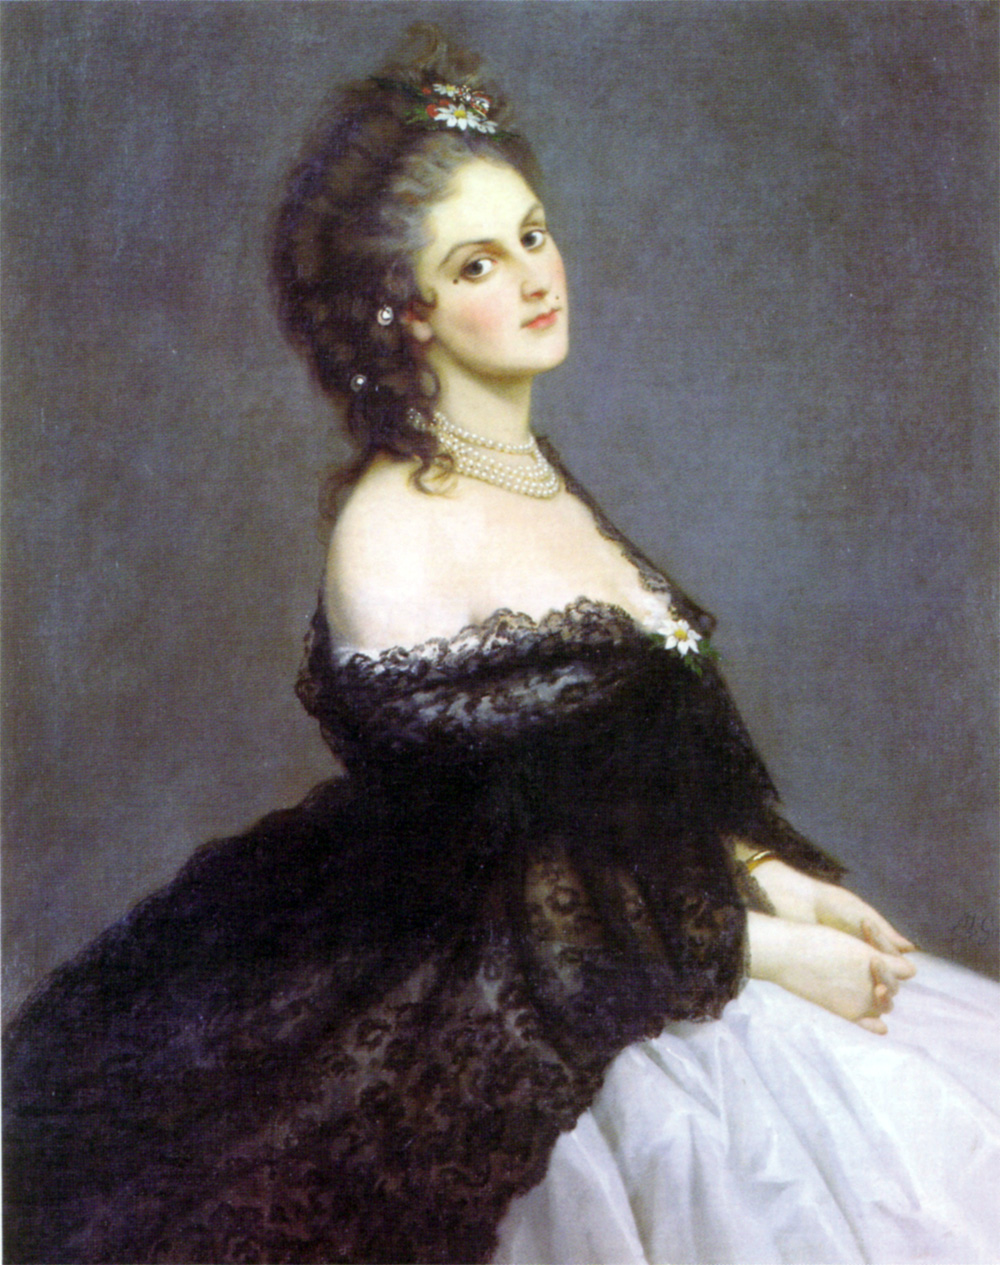 https://i2.wp.com/upload.wikimedia.org/wikipedia/commons/1/1e/Contessa_di_Castiglione.jpg